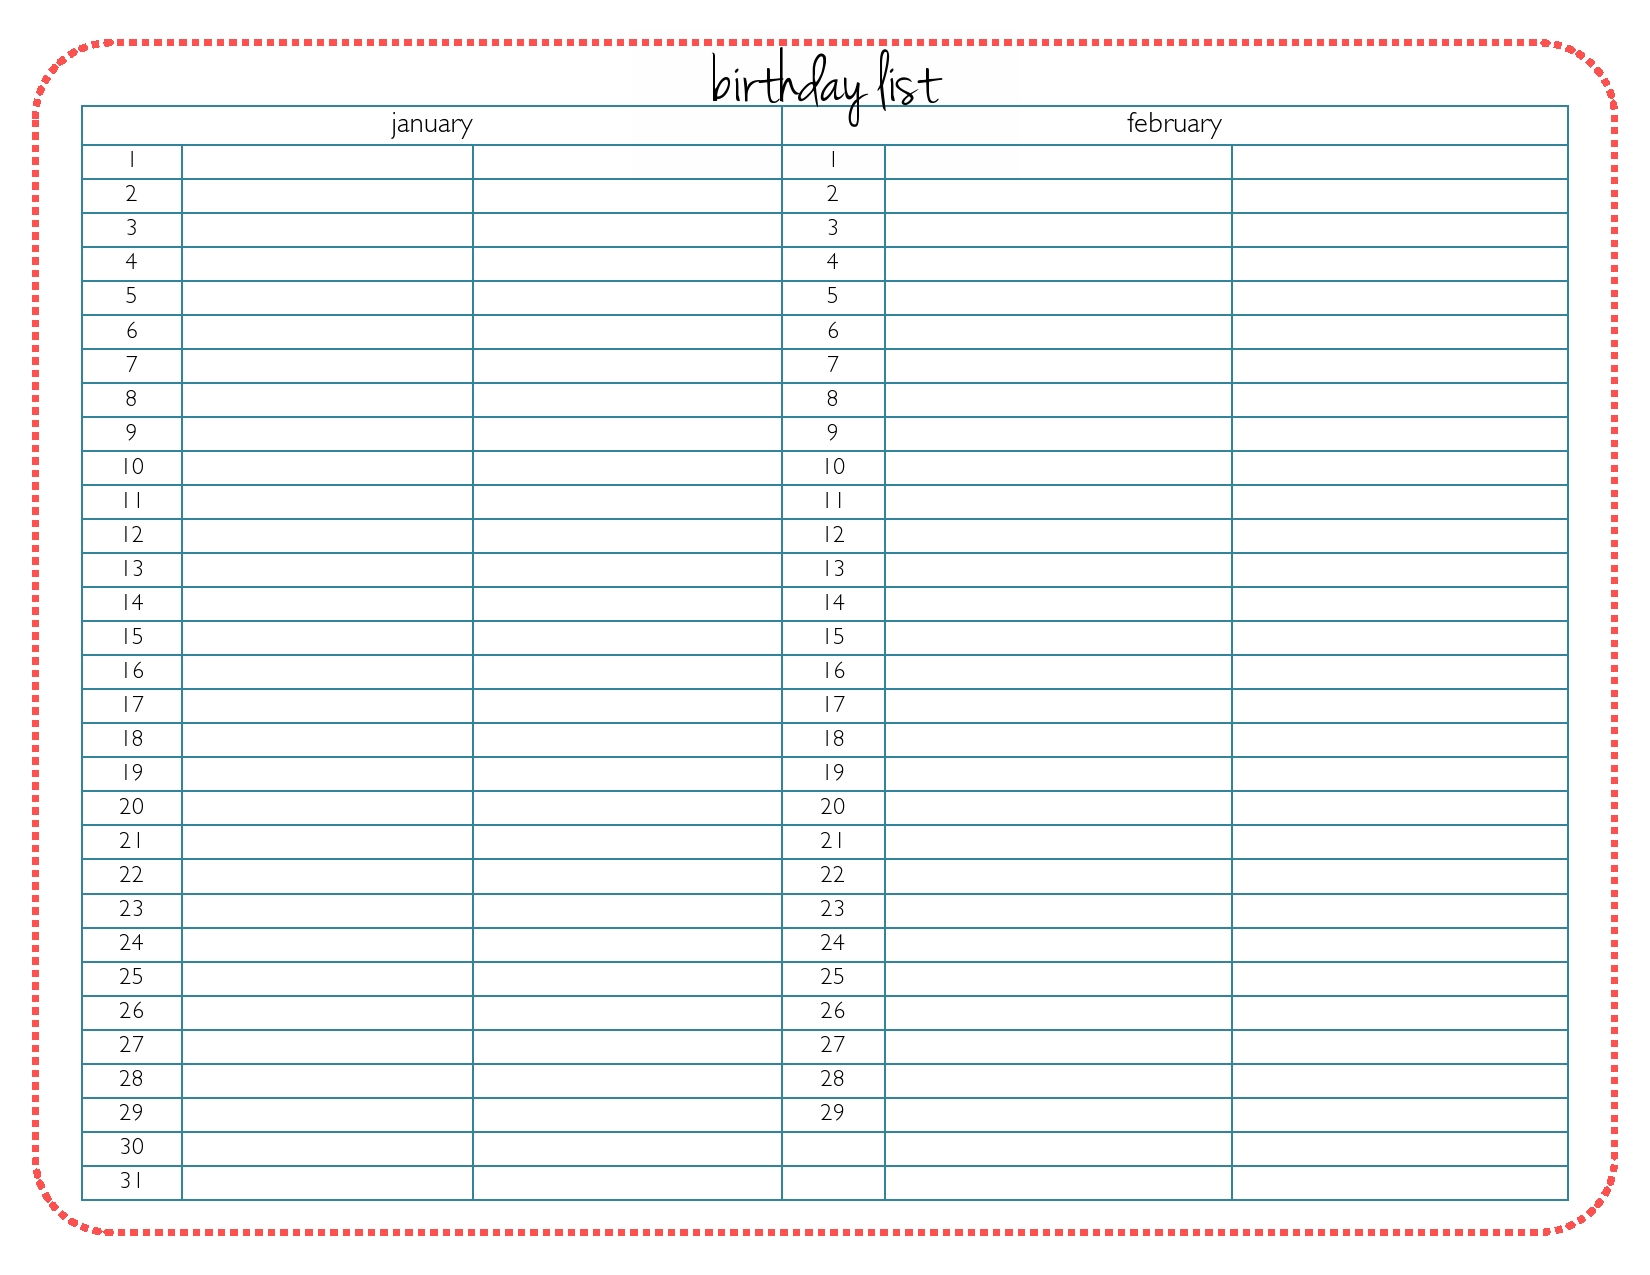 Year Calendar List : Acquirables yearly birthday list two blue pillars